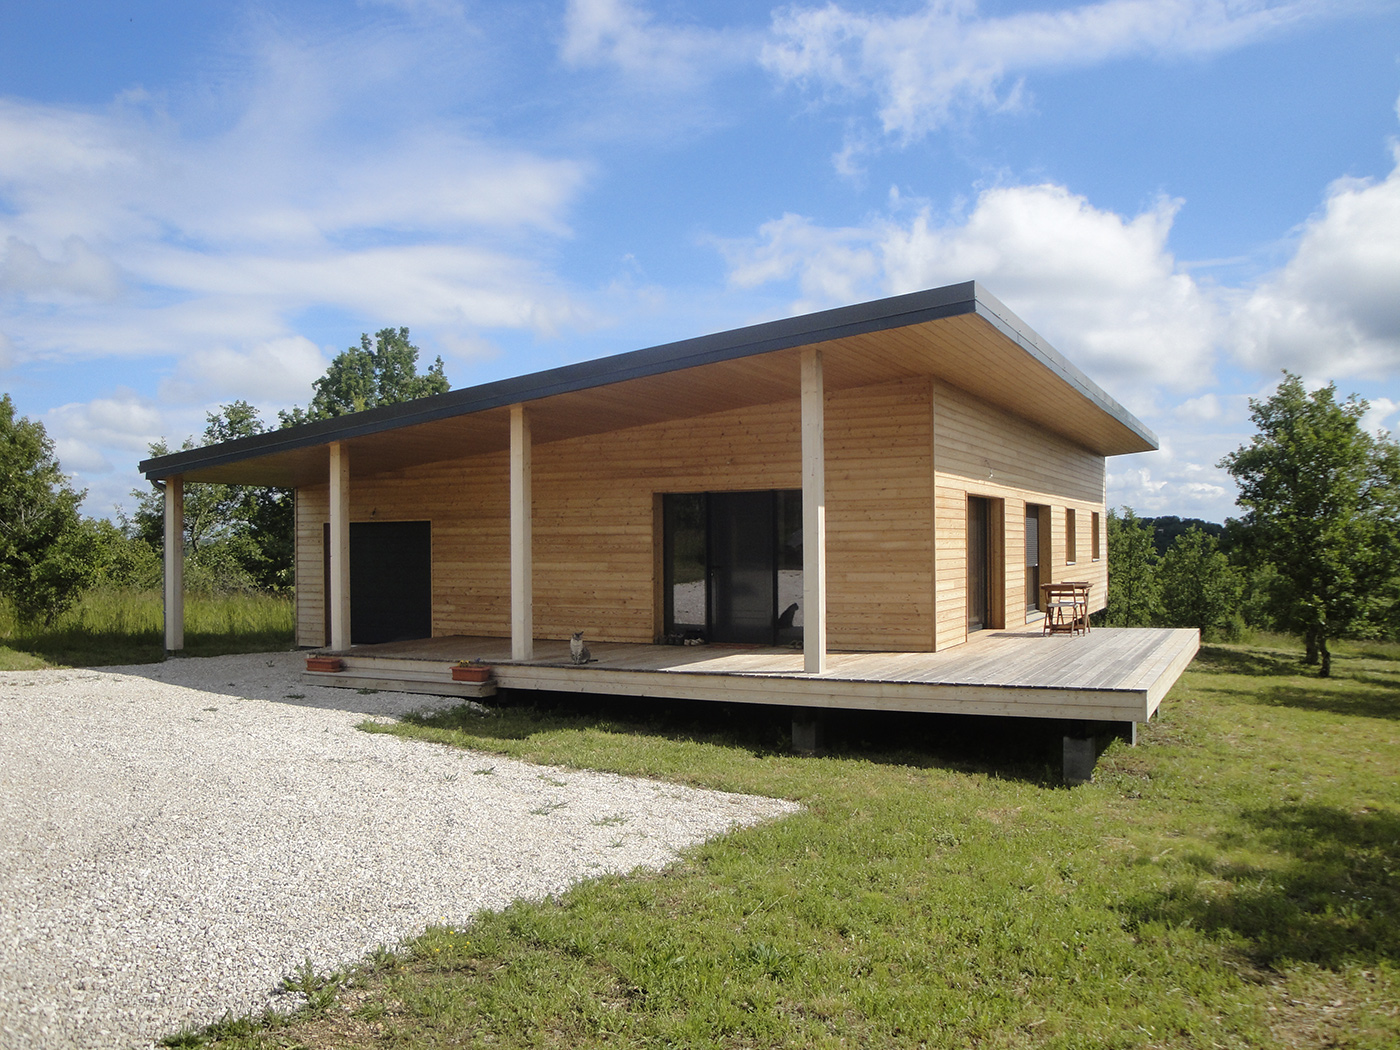 Maison contemporaine en ossature bois par evobois la maison bois par maisons for Image maison contemporaine